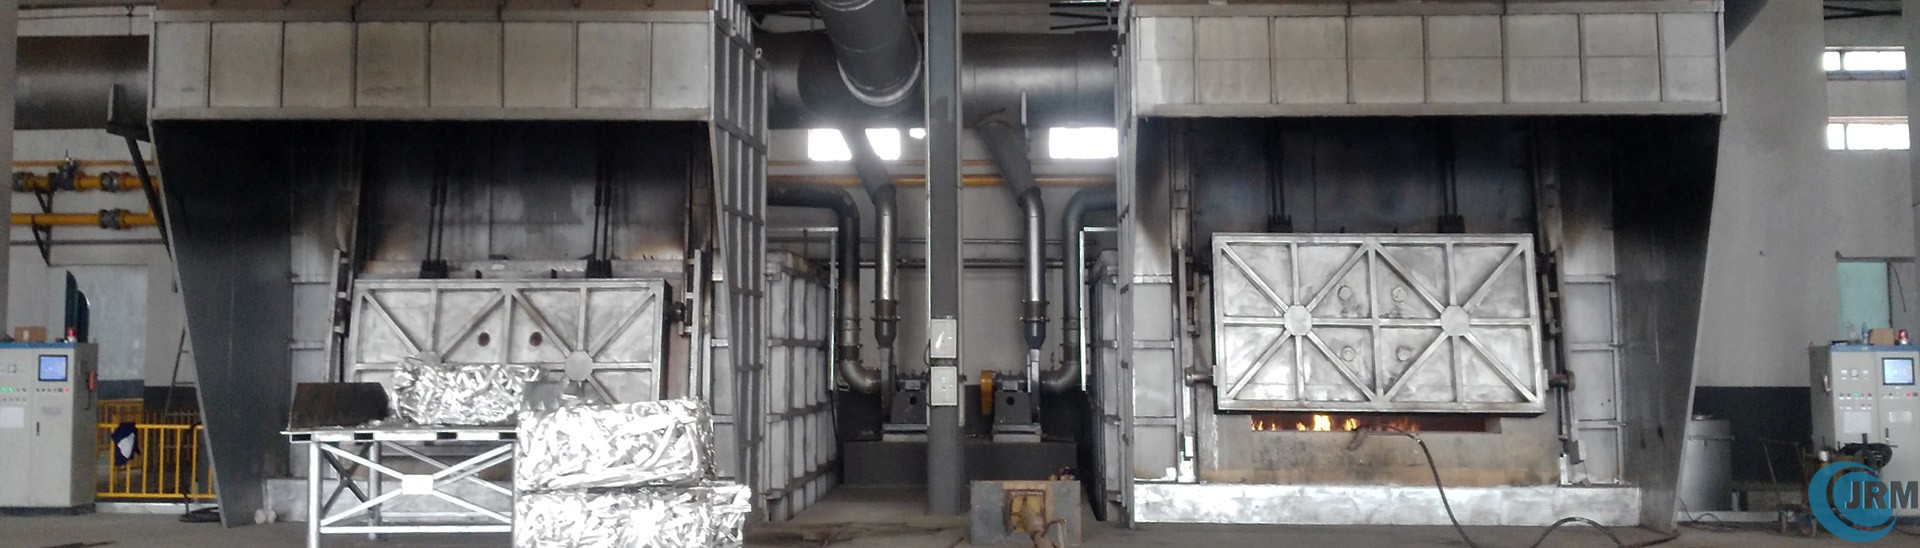 aluminium-melting-furnace-and-aluminium-billet-casting-machine